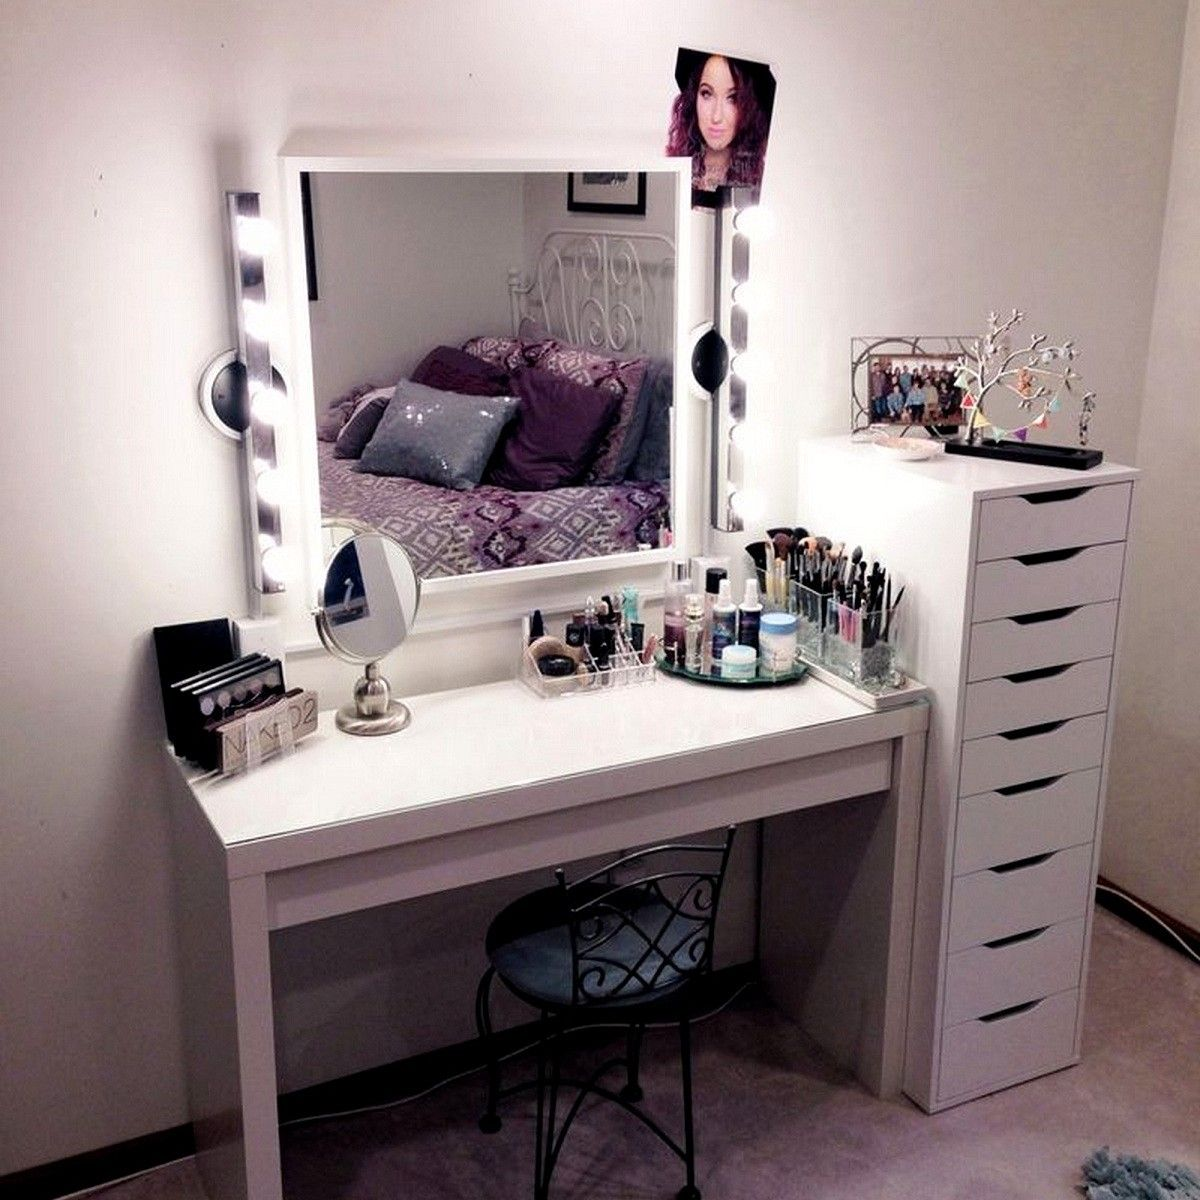 Wonderful Theme Of Vanity Makeup Table With Lights With Images